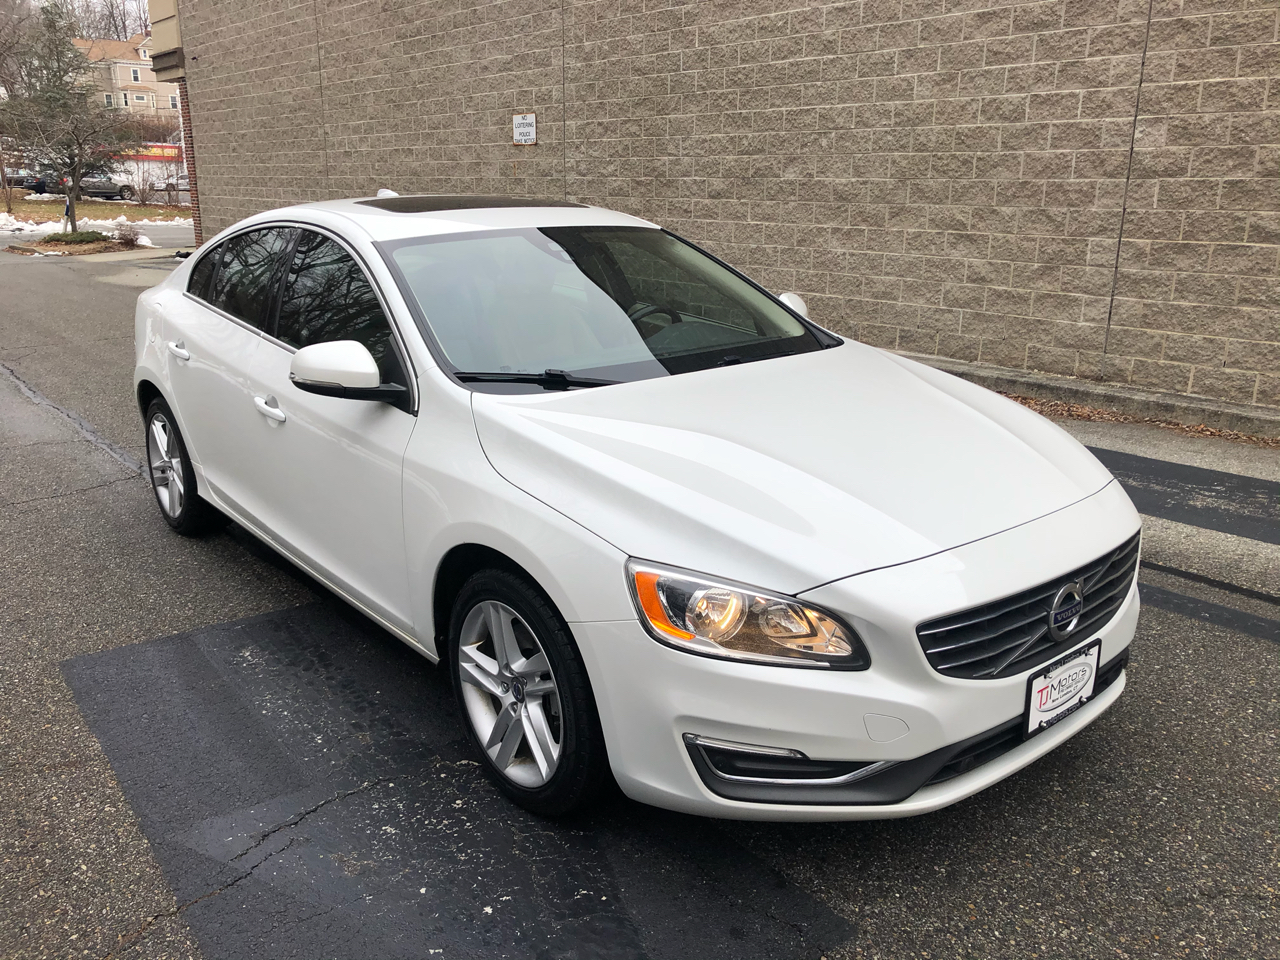 Volvo S60 4dr Sdn T5 AWD 2014